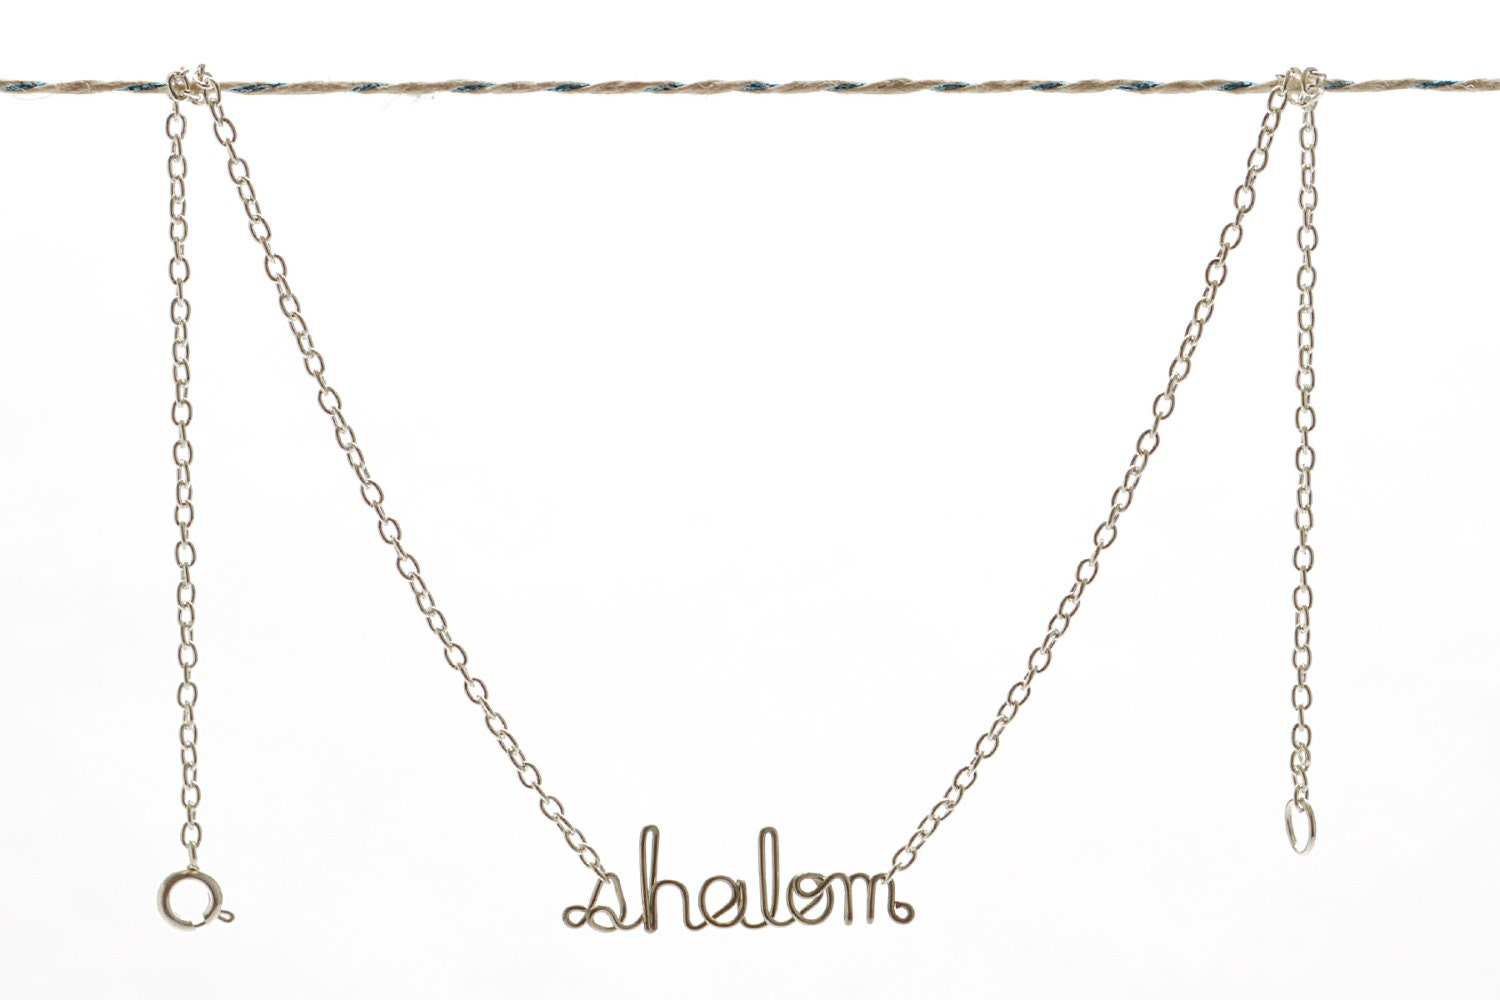 Shalom Necklace - Hebrew Peace Blessing Jewelry - Gift for a Jewish Friend, Co-worker, Mom Unique Christmas Gift